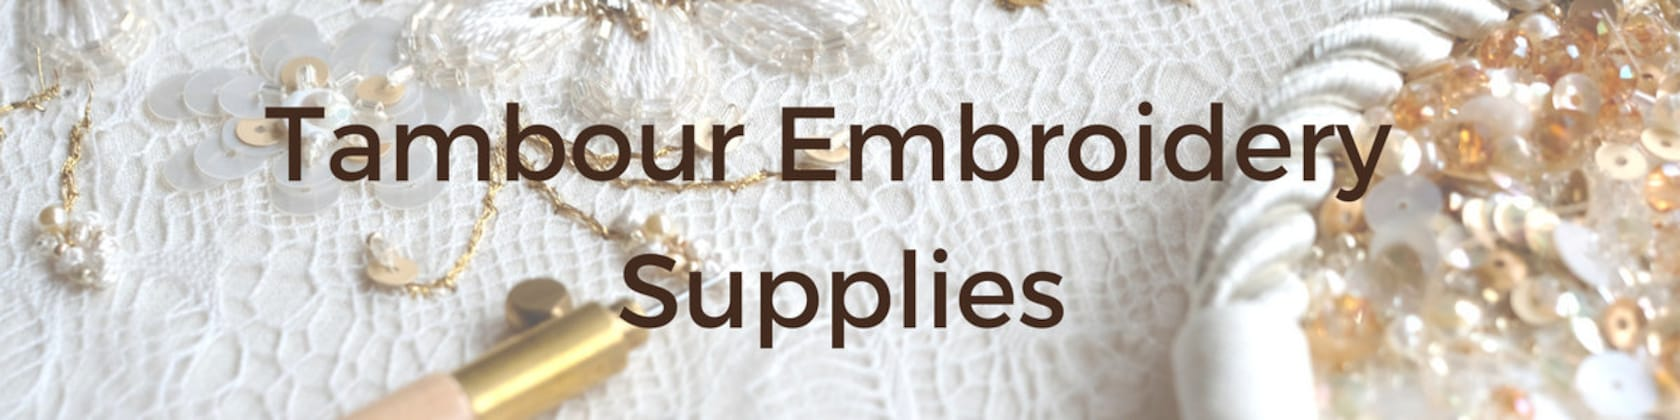 Haute Couture: Embroidery and Sewing Supplies por SaskiaTerWelle